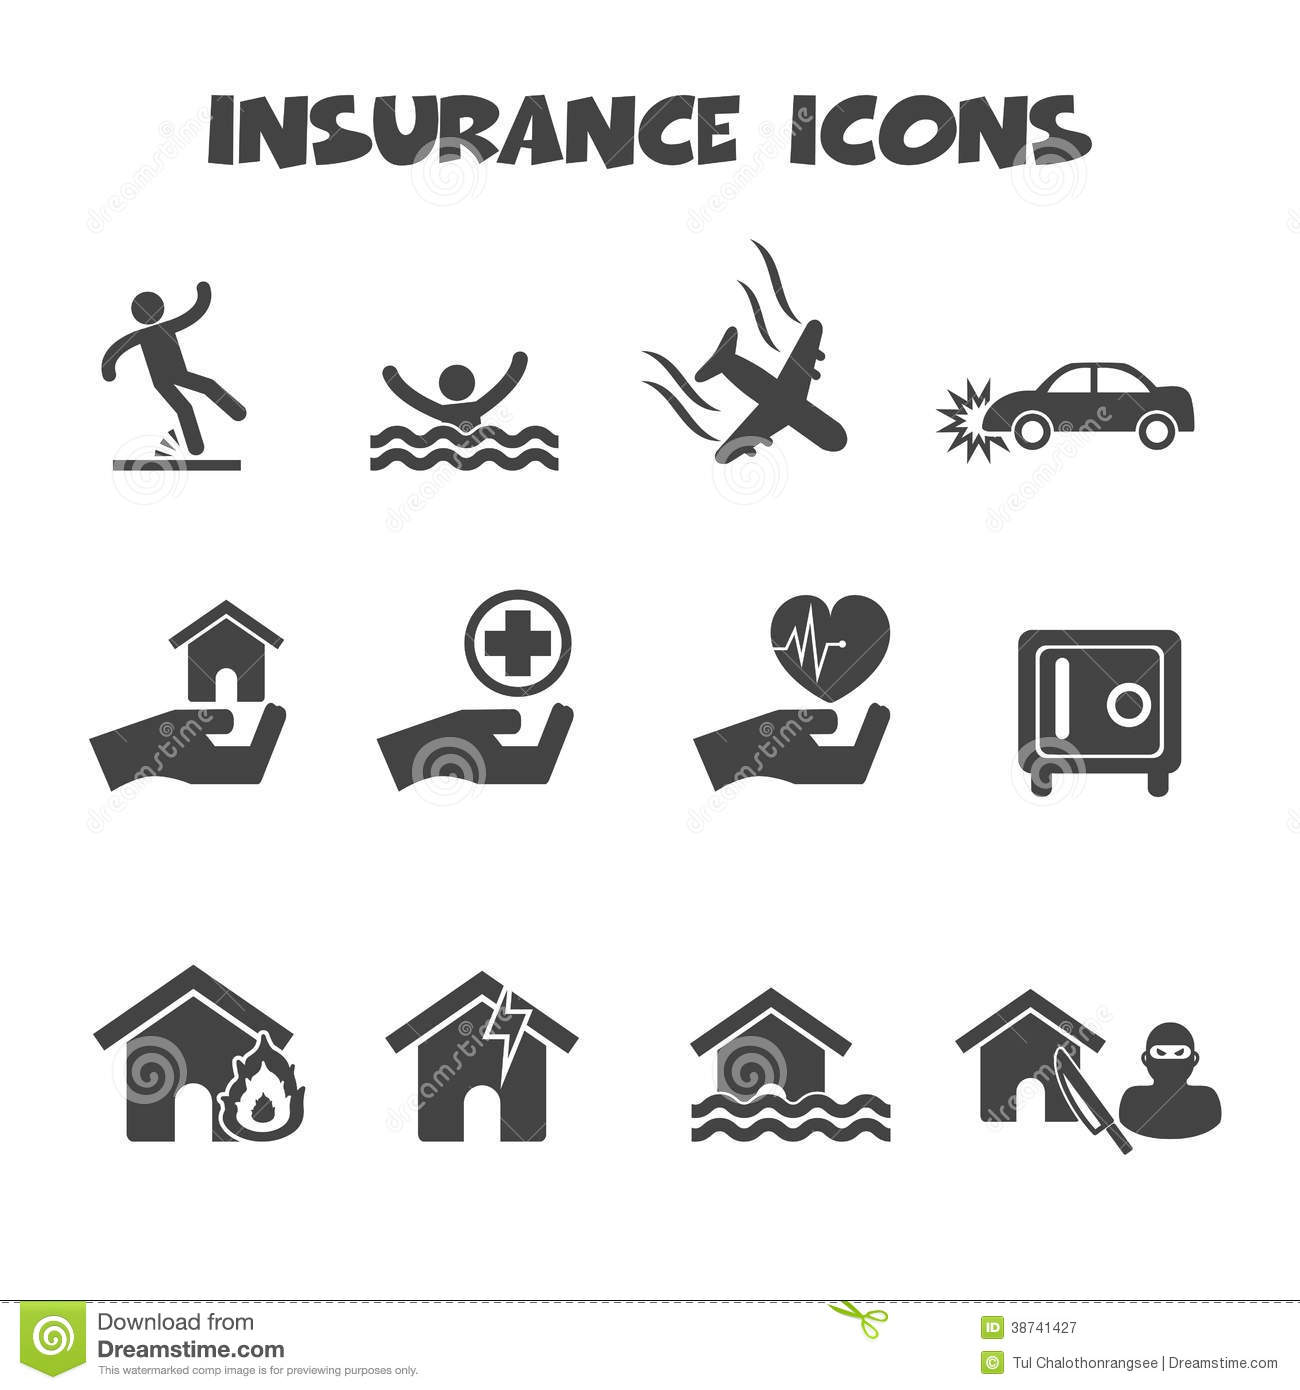 Training Videos furthermore Hybrid Halligan additionally Royalty Free Stock Photography Insurance Icons Mono Vector Symbols Image38741427 together with 1799610 further Quotes Calm. on home fire safety